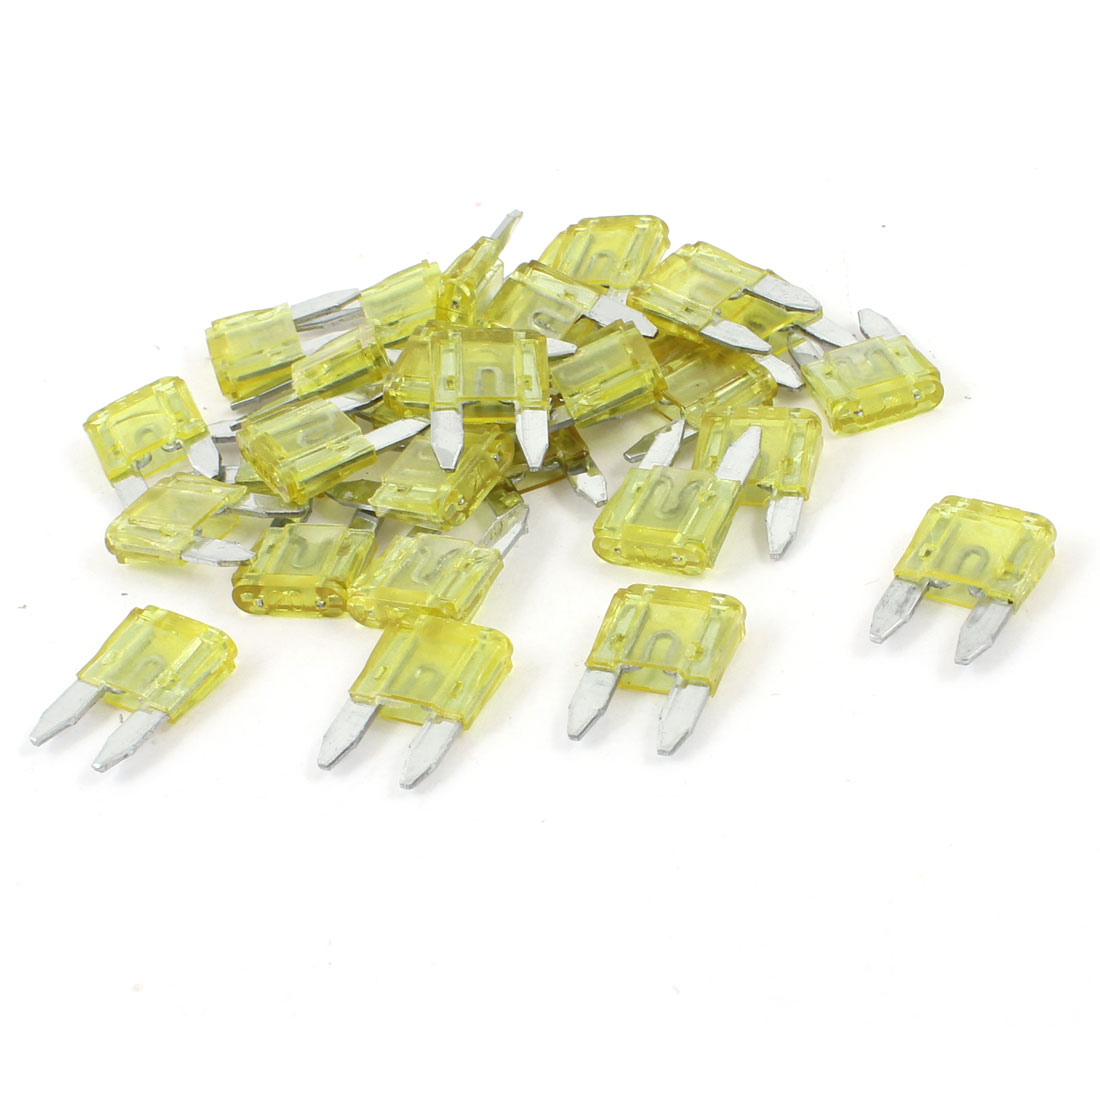 20A Auto Car Motorcycle Mini Blade Fuse Yellow 30 Pieces